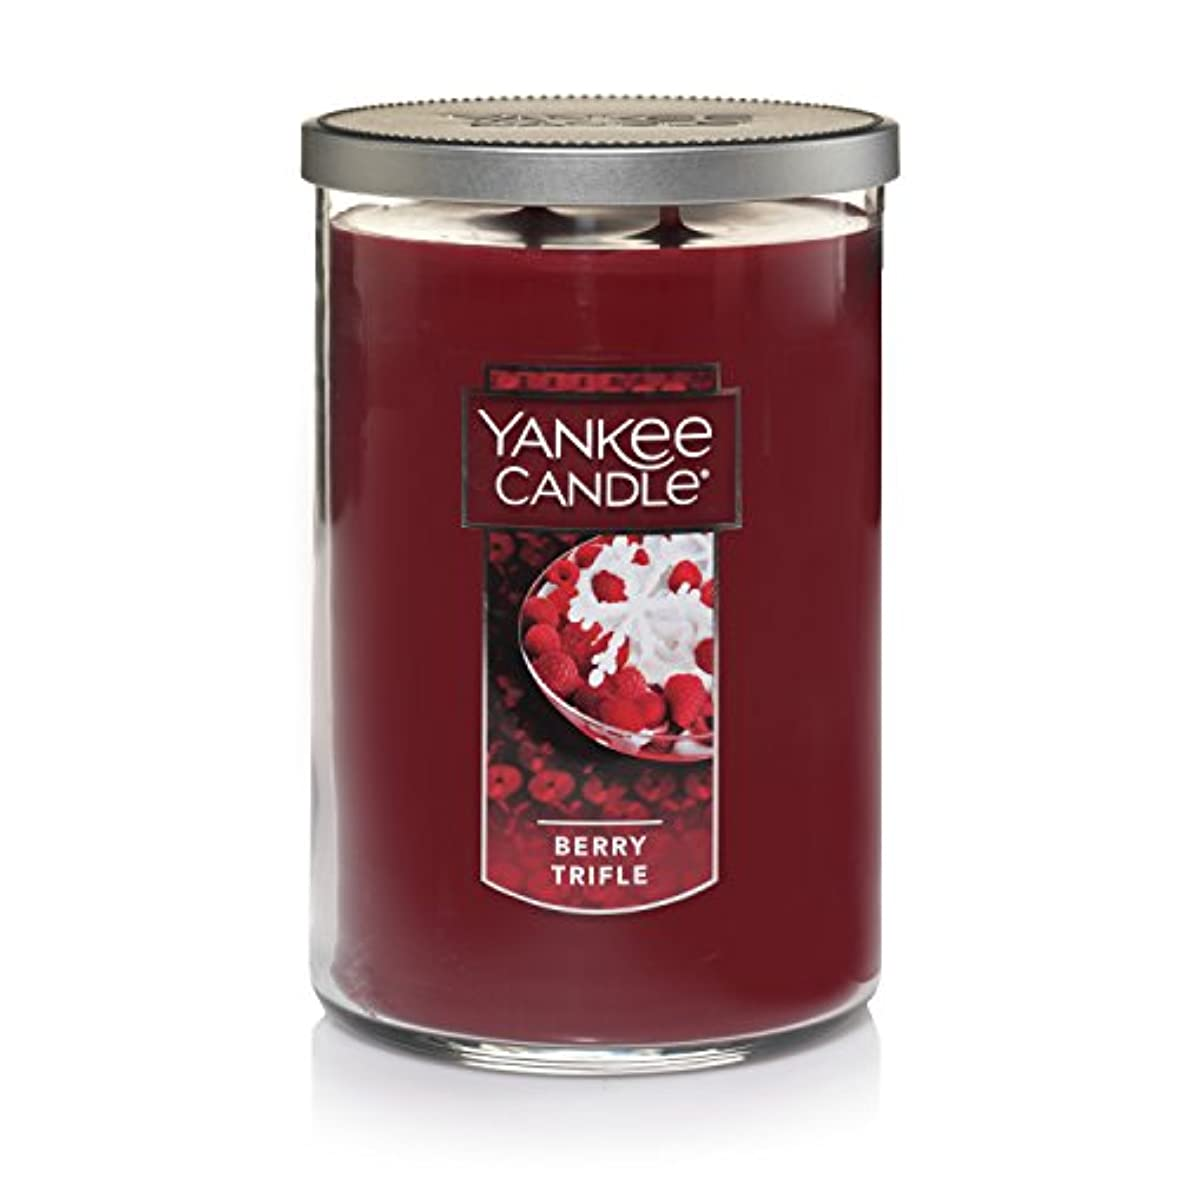 絶滅させる冷蔵庫旧正月Yankee Candle Large Jar Candle Large 2-Wick Tumbler Candle レッド 1342528